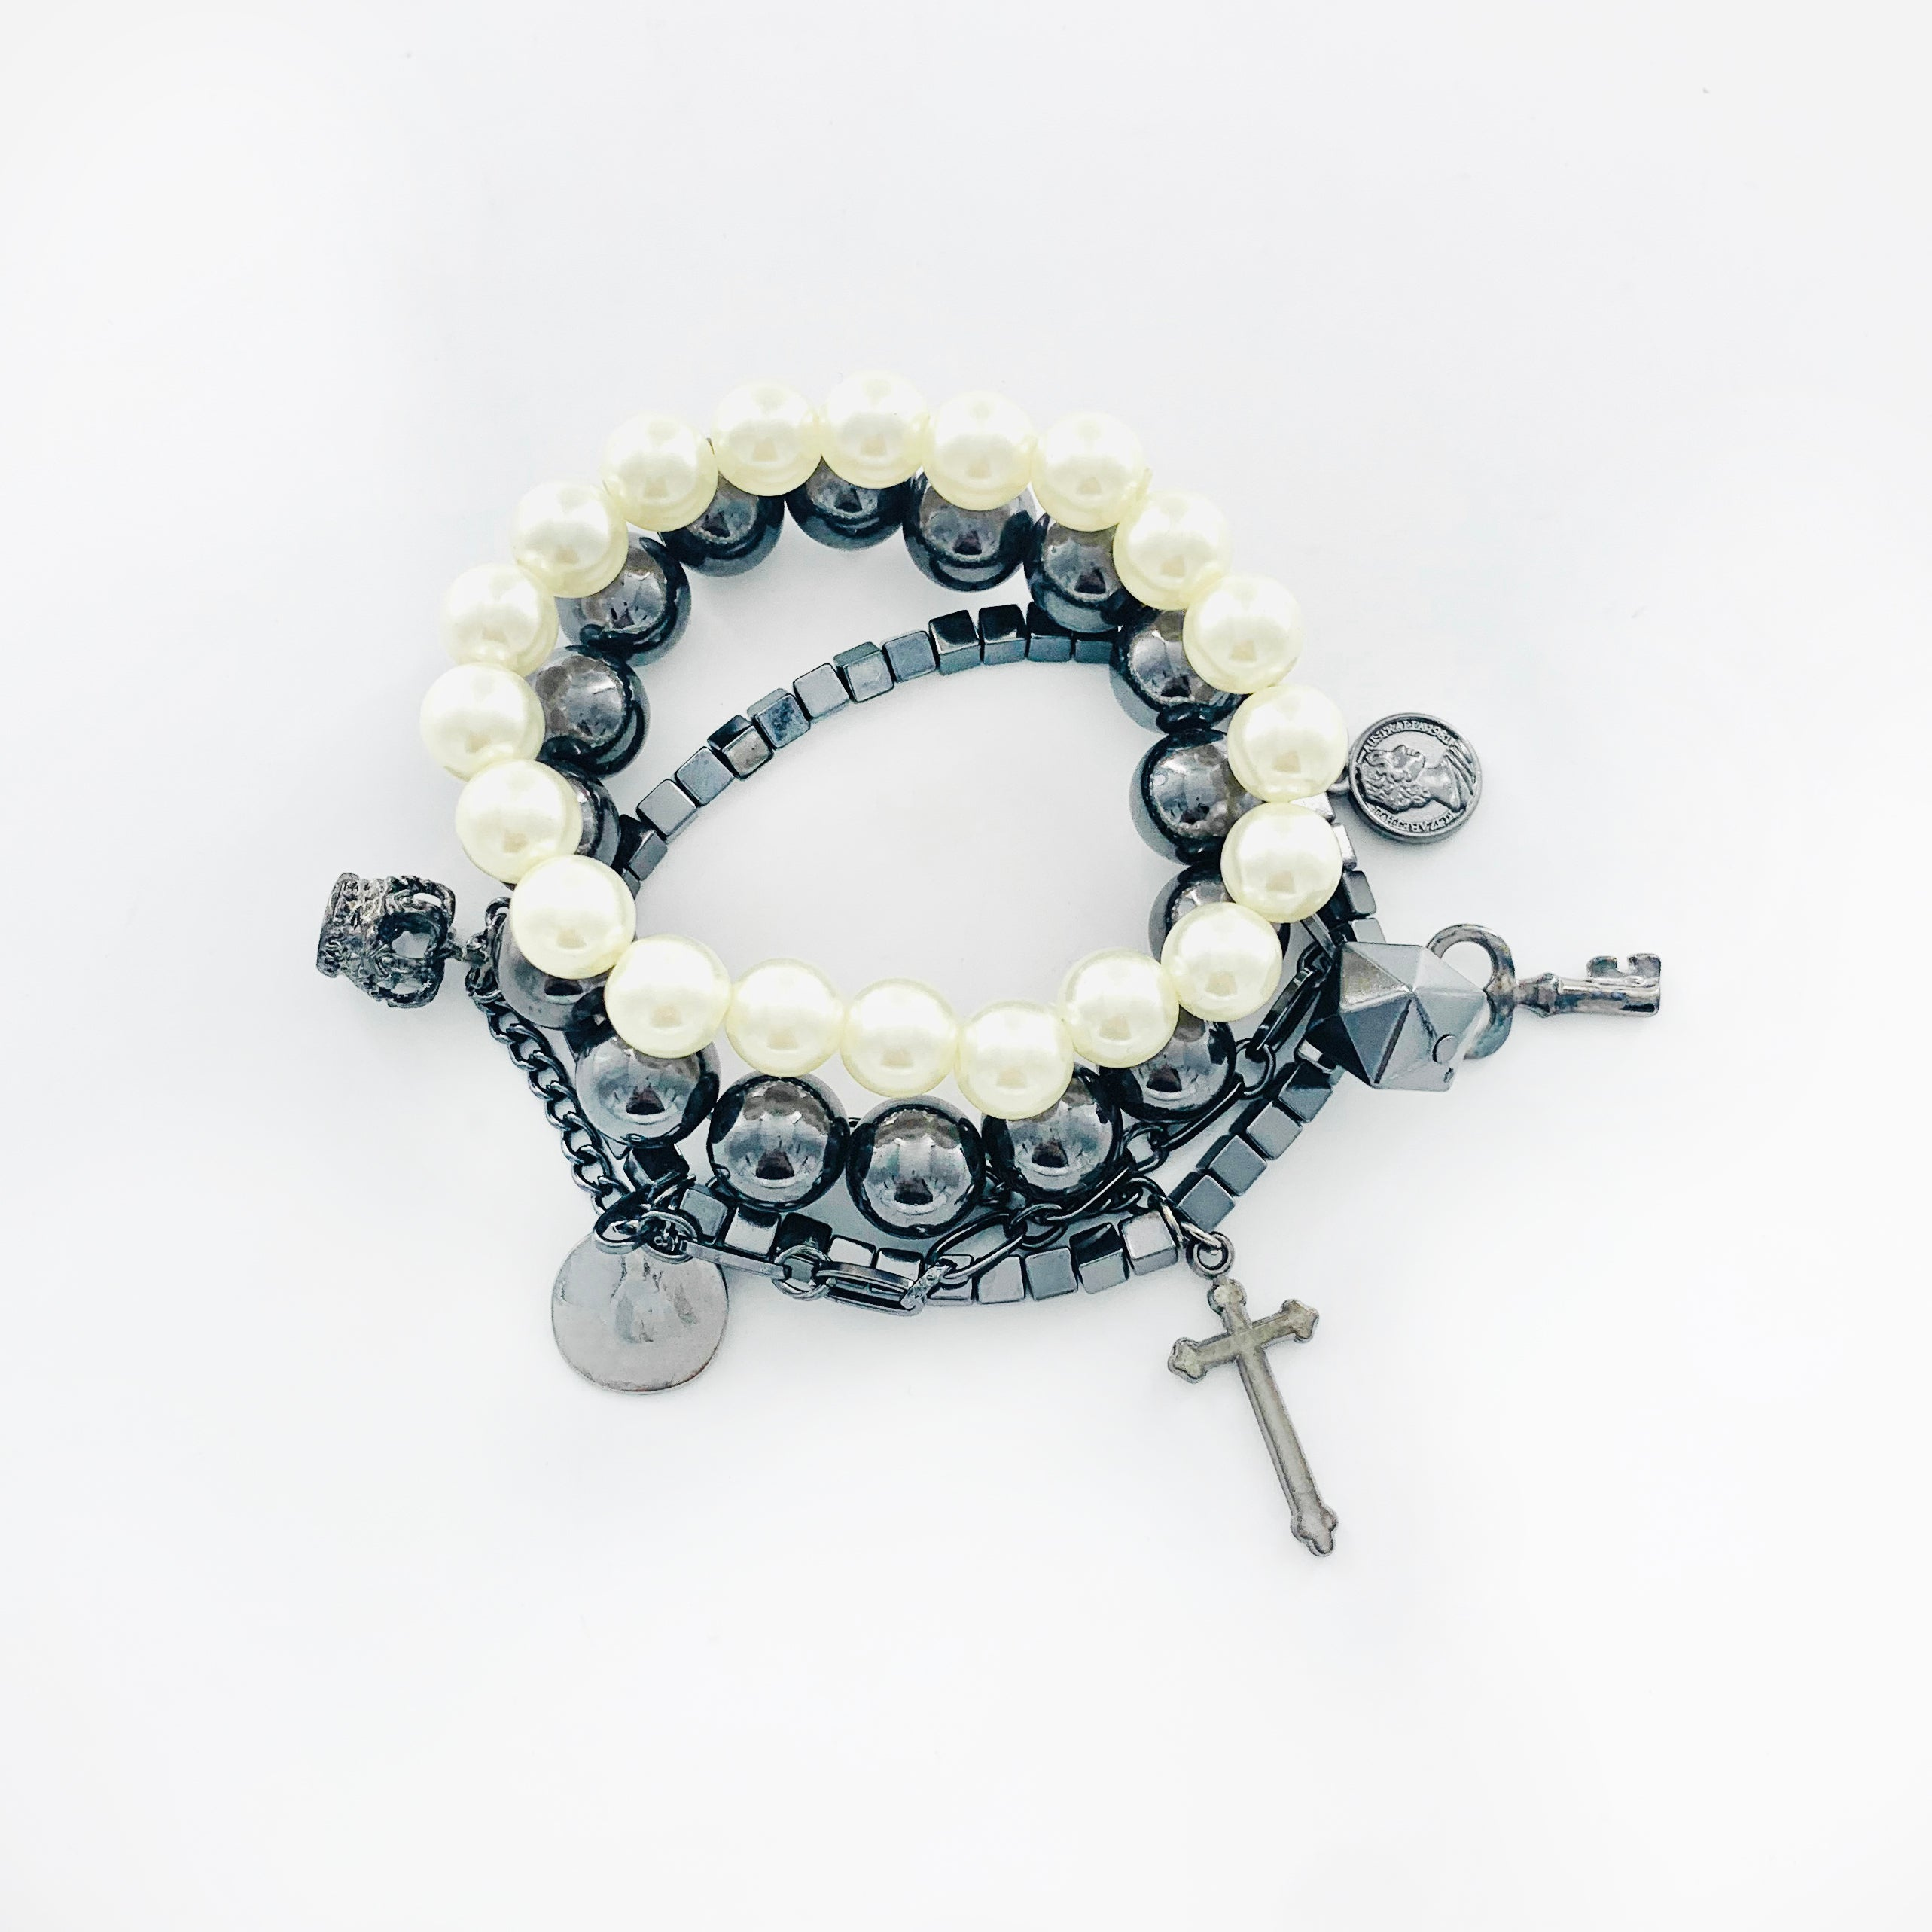 Gunmetal and Pearl bracelets with Cross and Crown charms